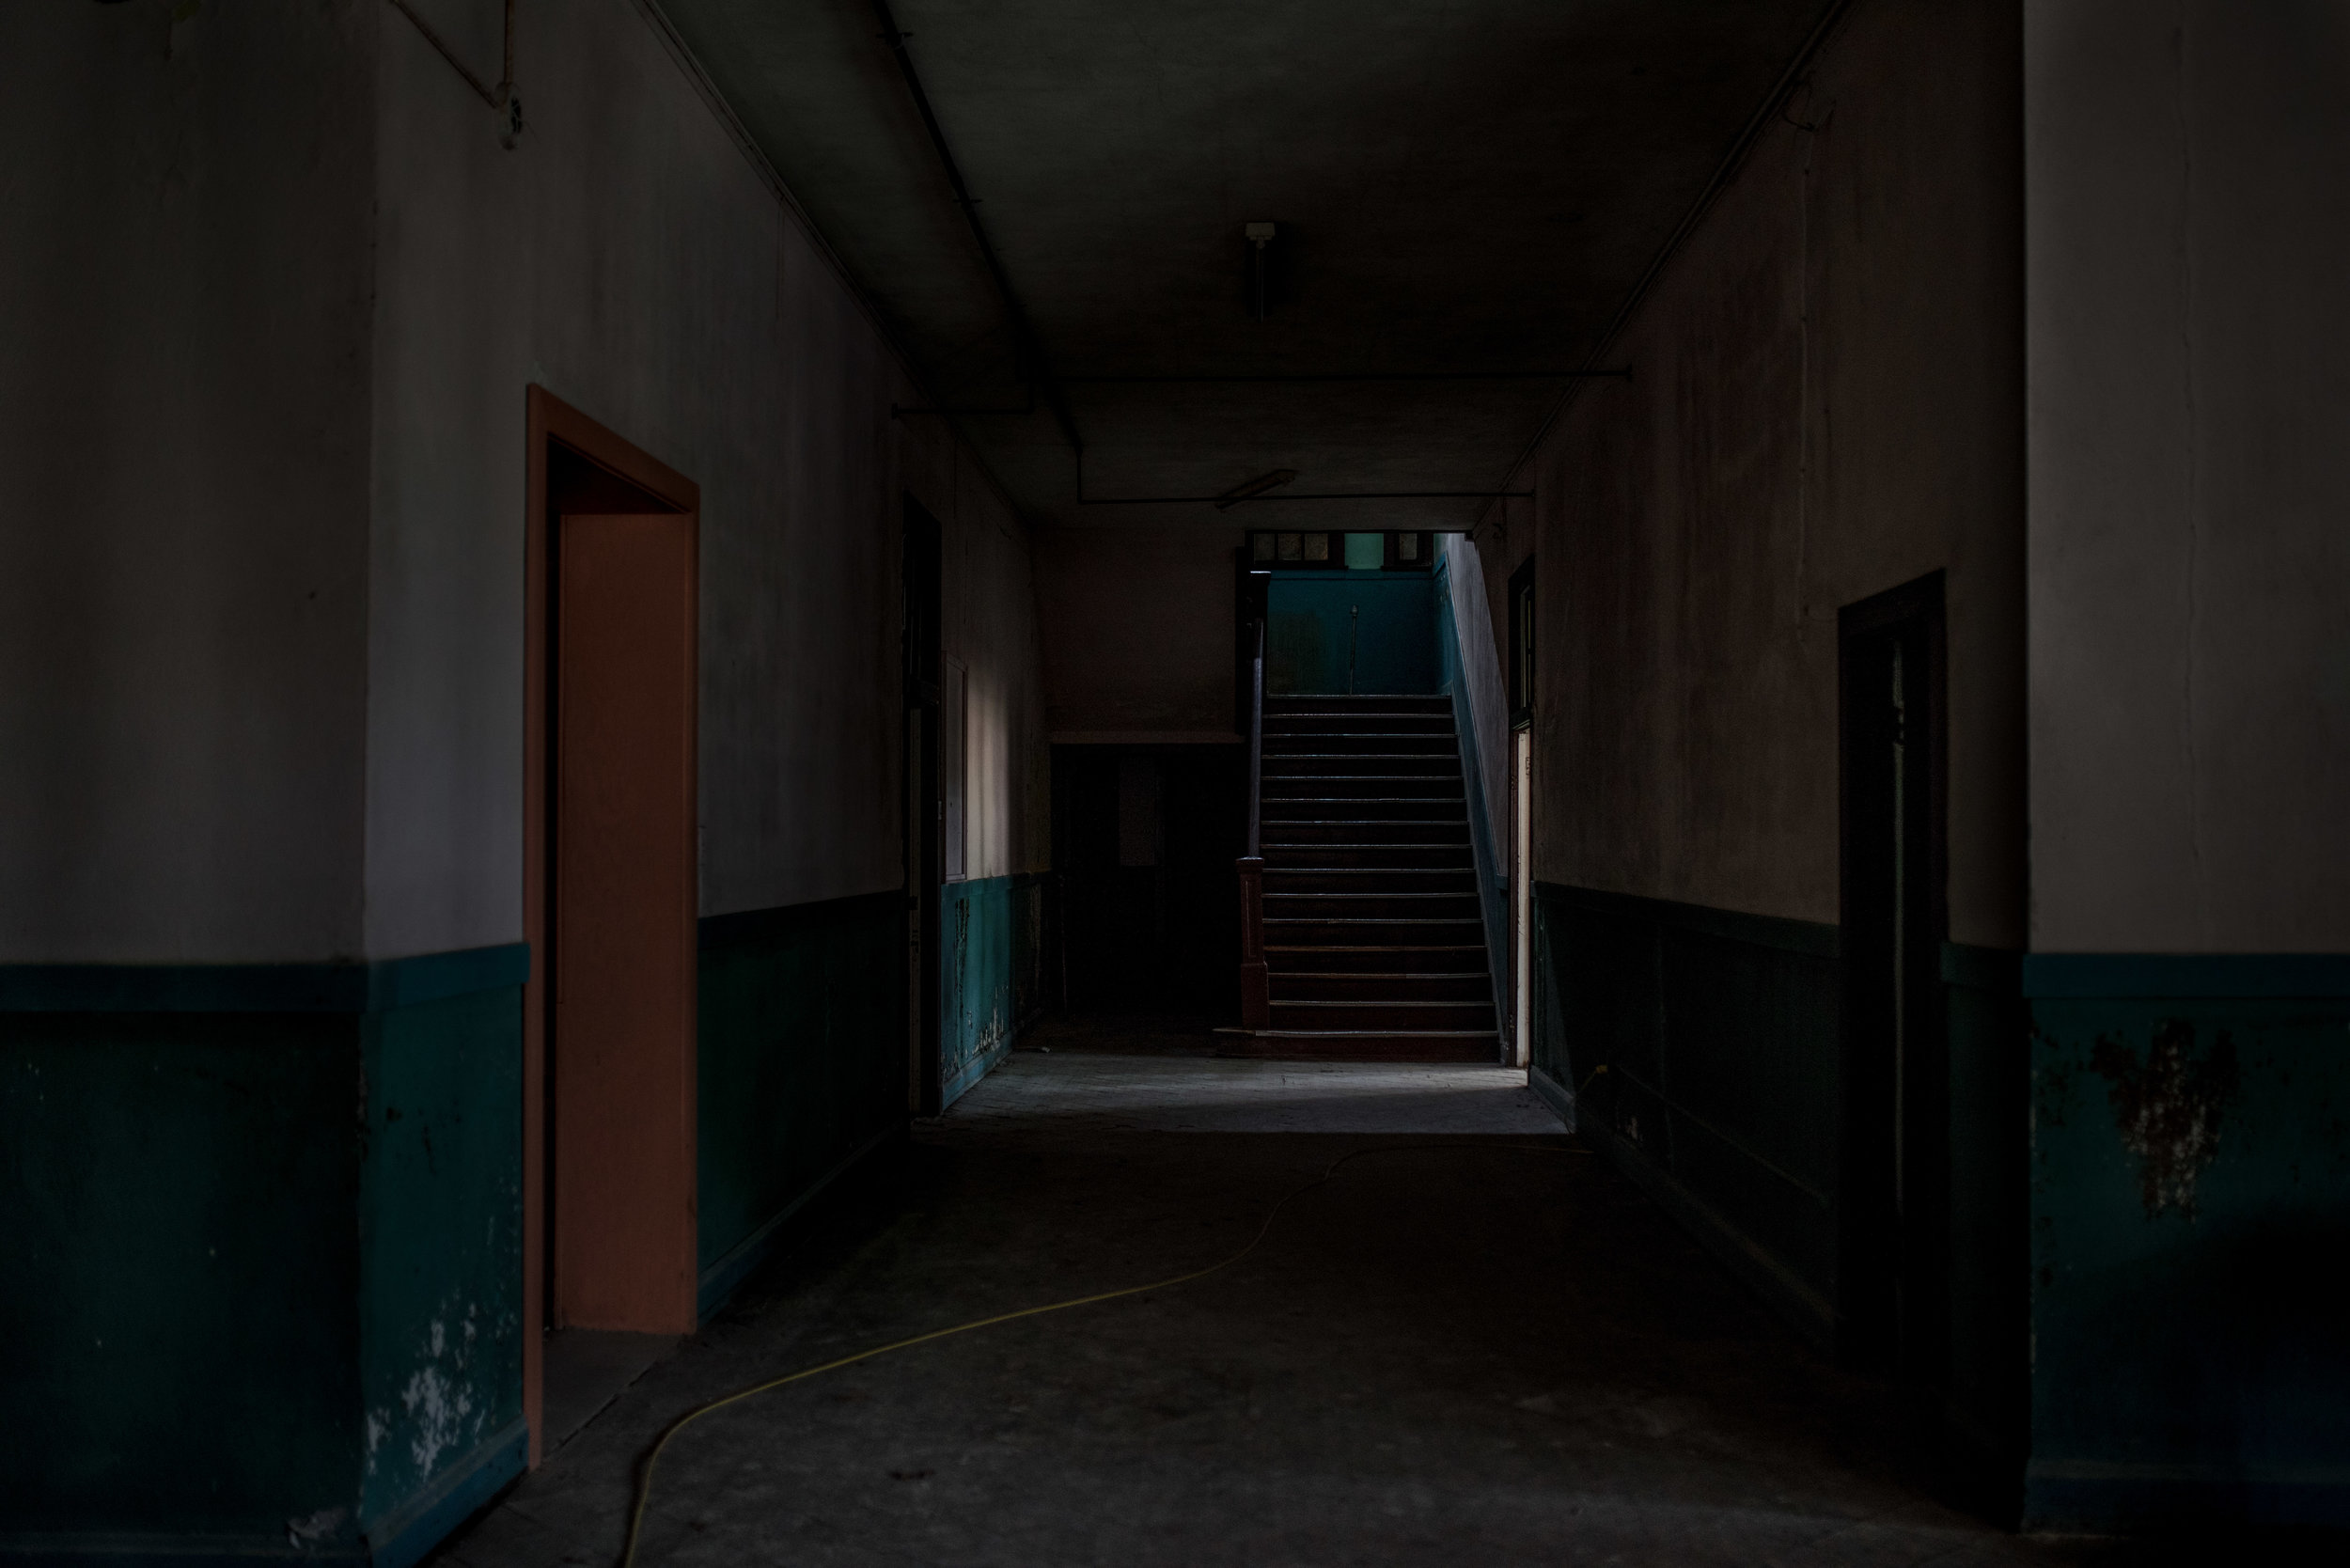 ABANDONED - WHERE HAVE THEY ALL GONE, THOSE WHO WALKED THESE HALLWAYS WHOSE LAUGHTER ONCE RUNG WITHIN THESE WALLS?